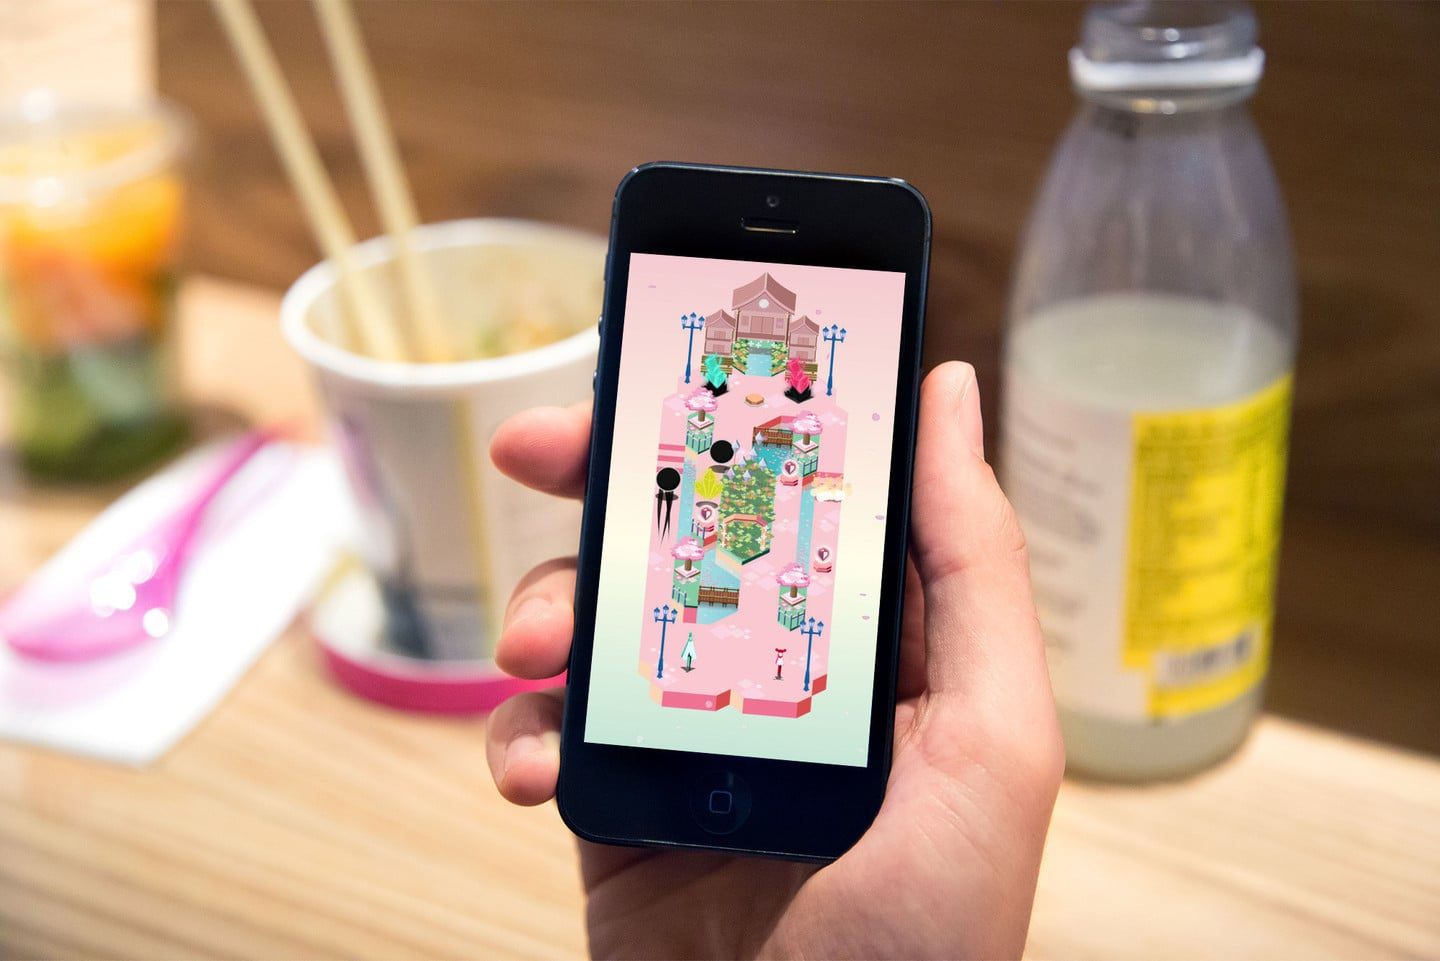 Restore Life and Color to the Puzzling World of Umiro